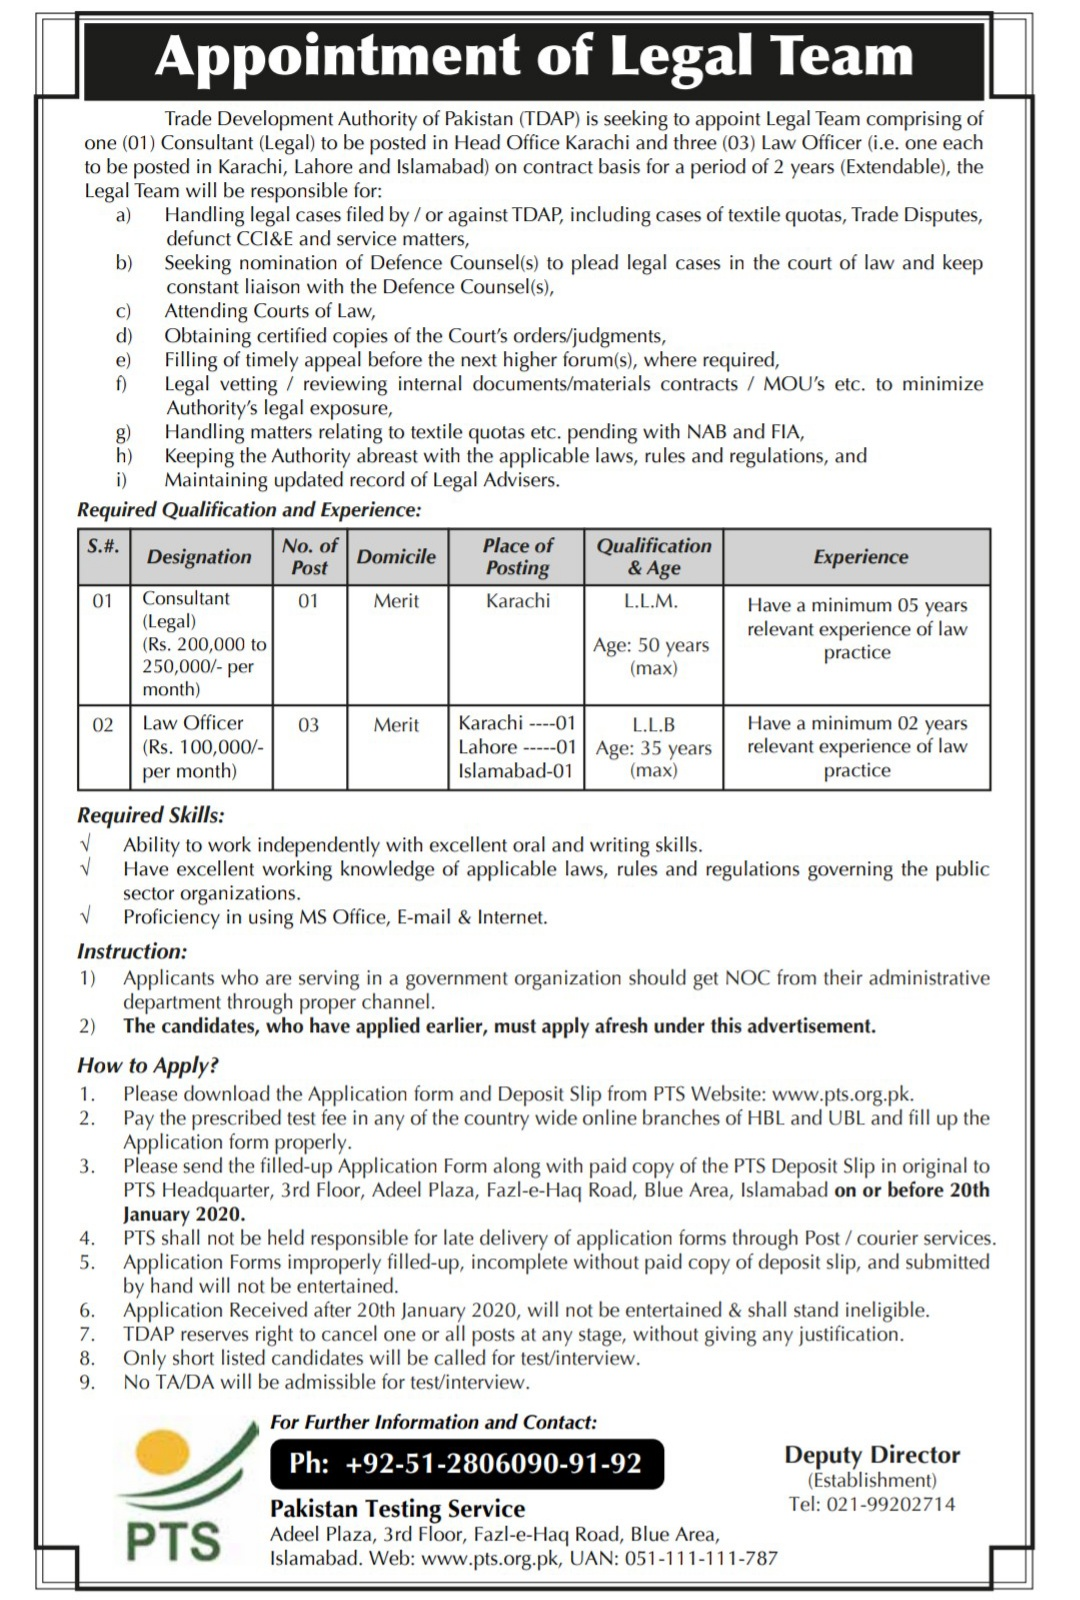 Trade Development Authority of Pakistan TDAP Jobs PTS Result TDAP 378